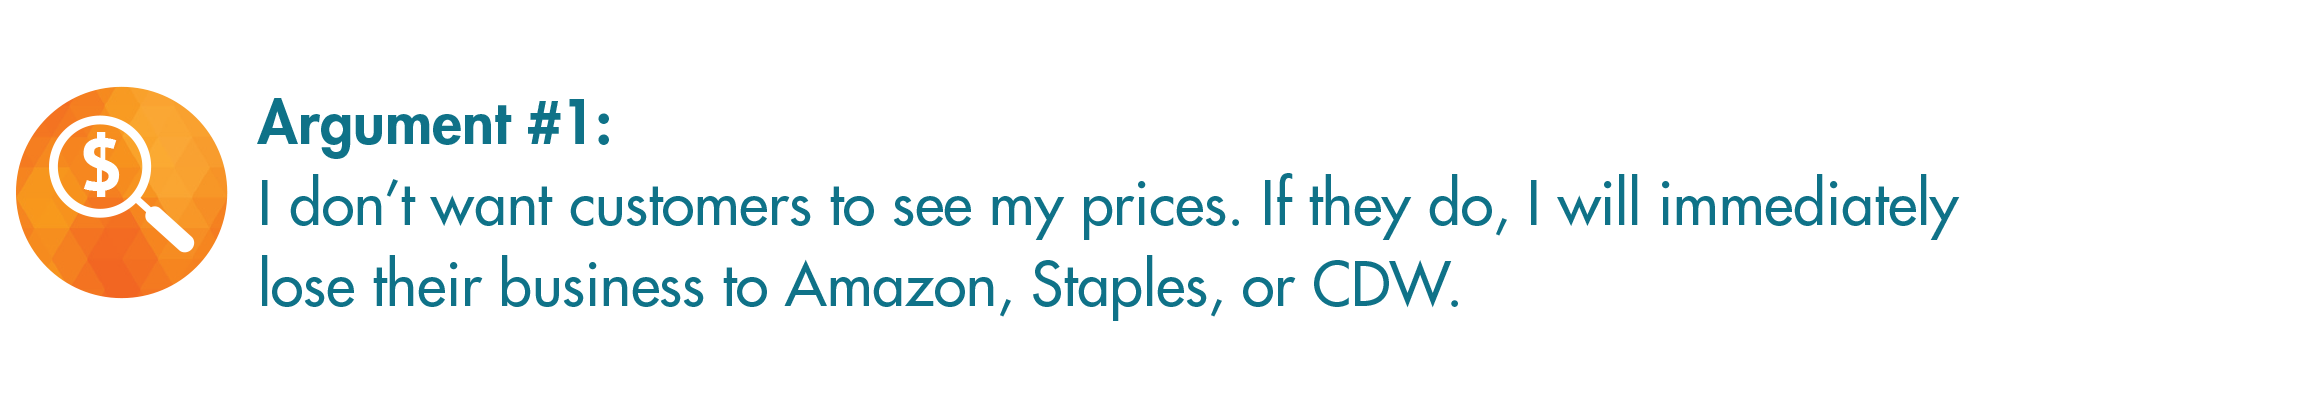 Argument 1: I don't want customers to see my prices. If they do, I will immediately lose their business to Amazon, Staples, or CDW.